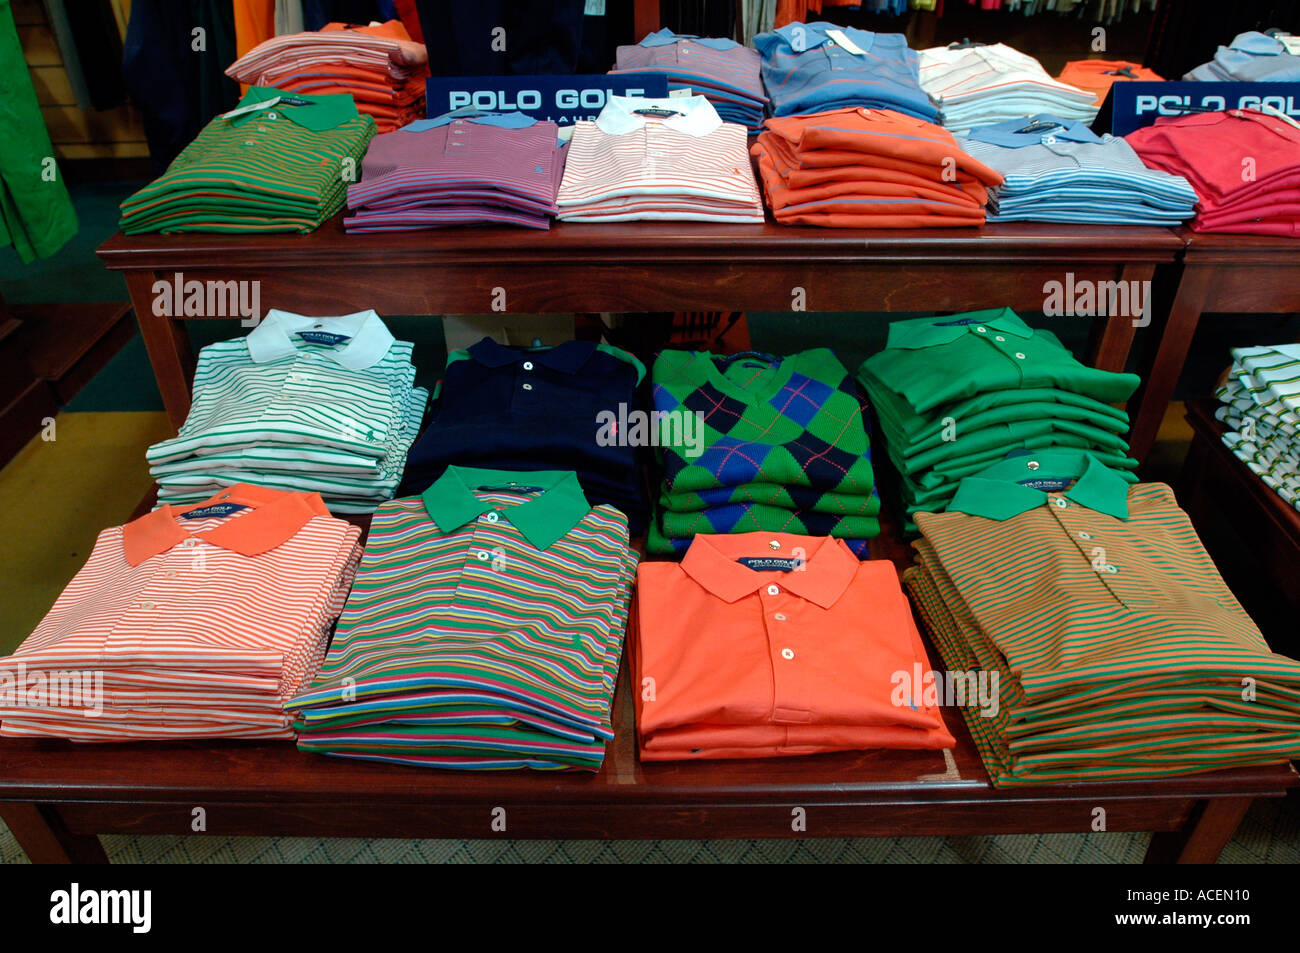 a9a9117d Polo golf shirts by Ralph Lauren at the New York Golf Center - Stock Image